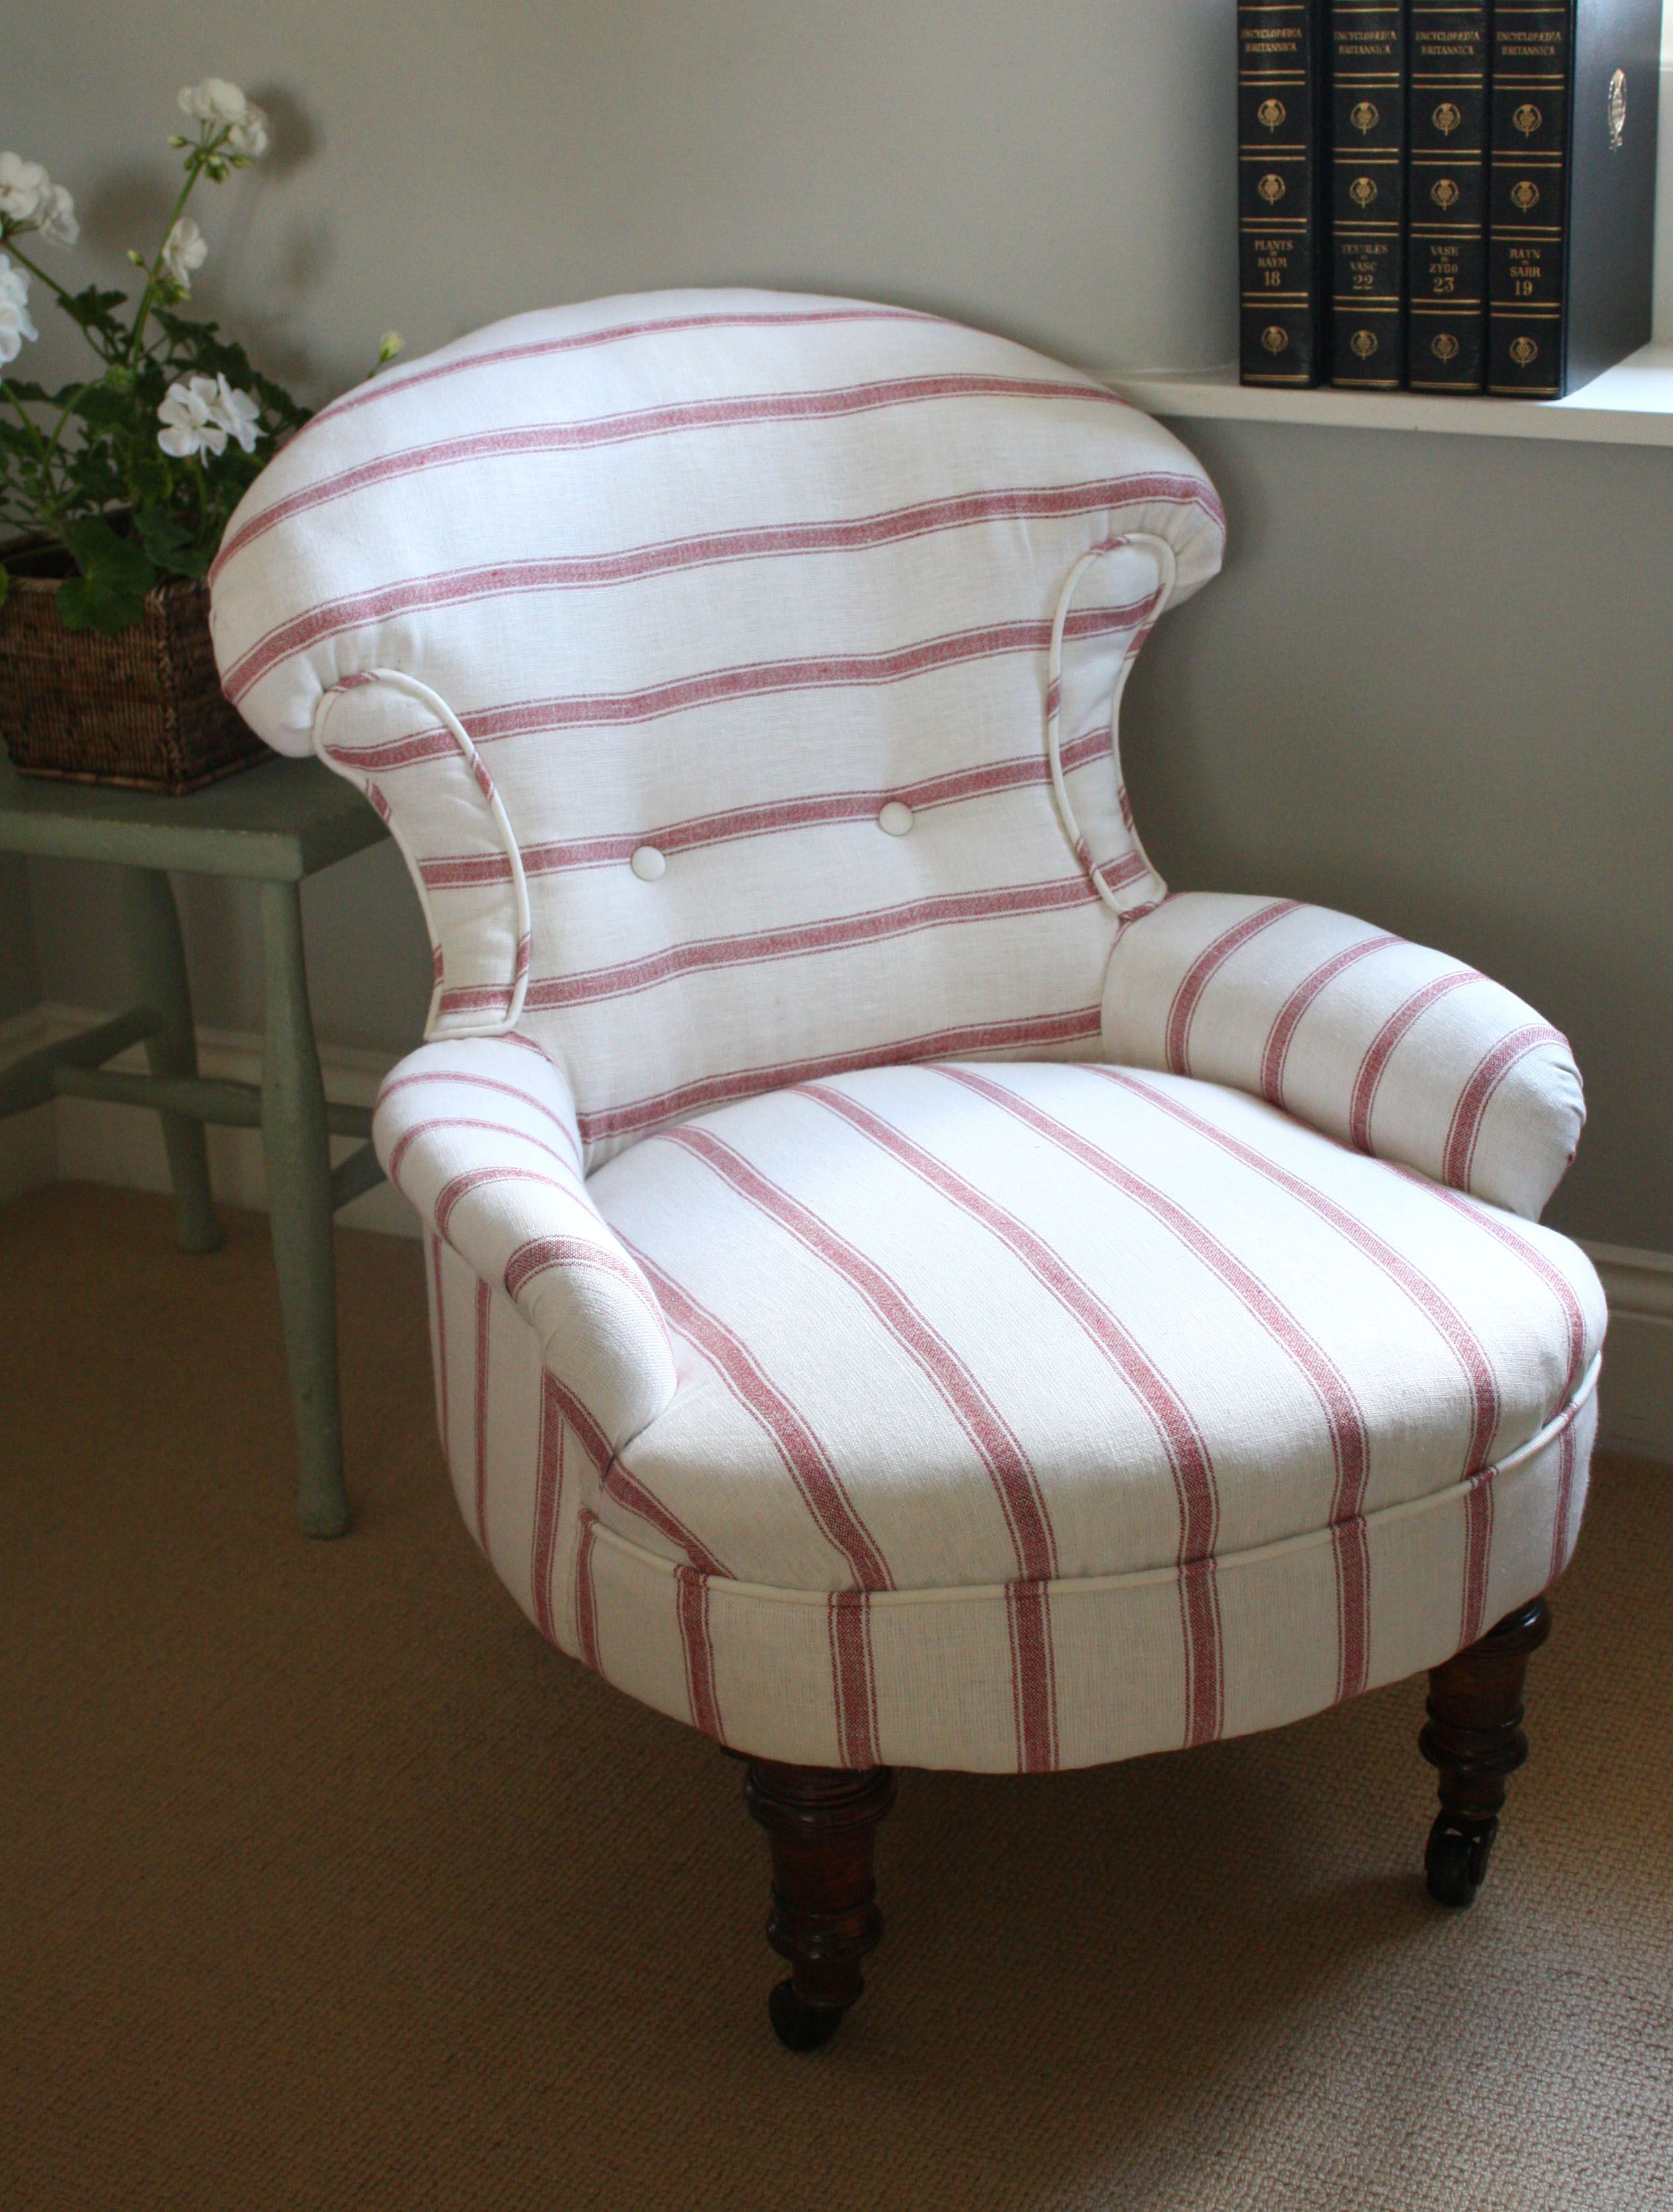 For Sale Victorian Slipper Chair Upholstered In Ian Mankin S Linen Stripe Www Sallywhitedesigns Com Upholstered Chairs Vintage Painted Furniture Chair